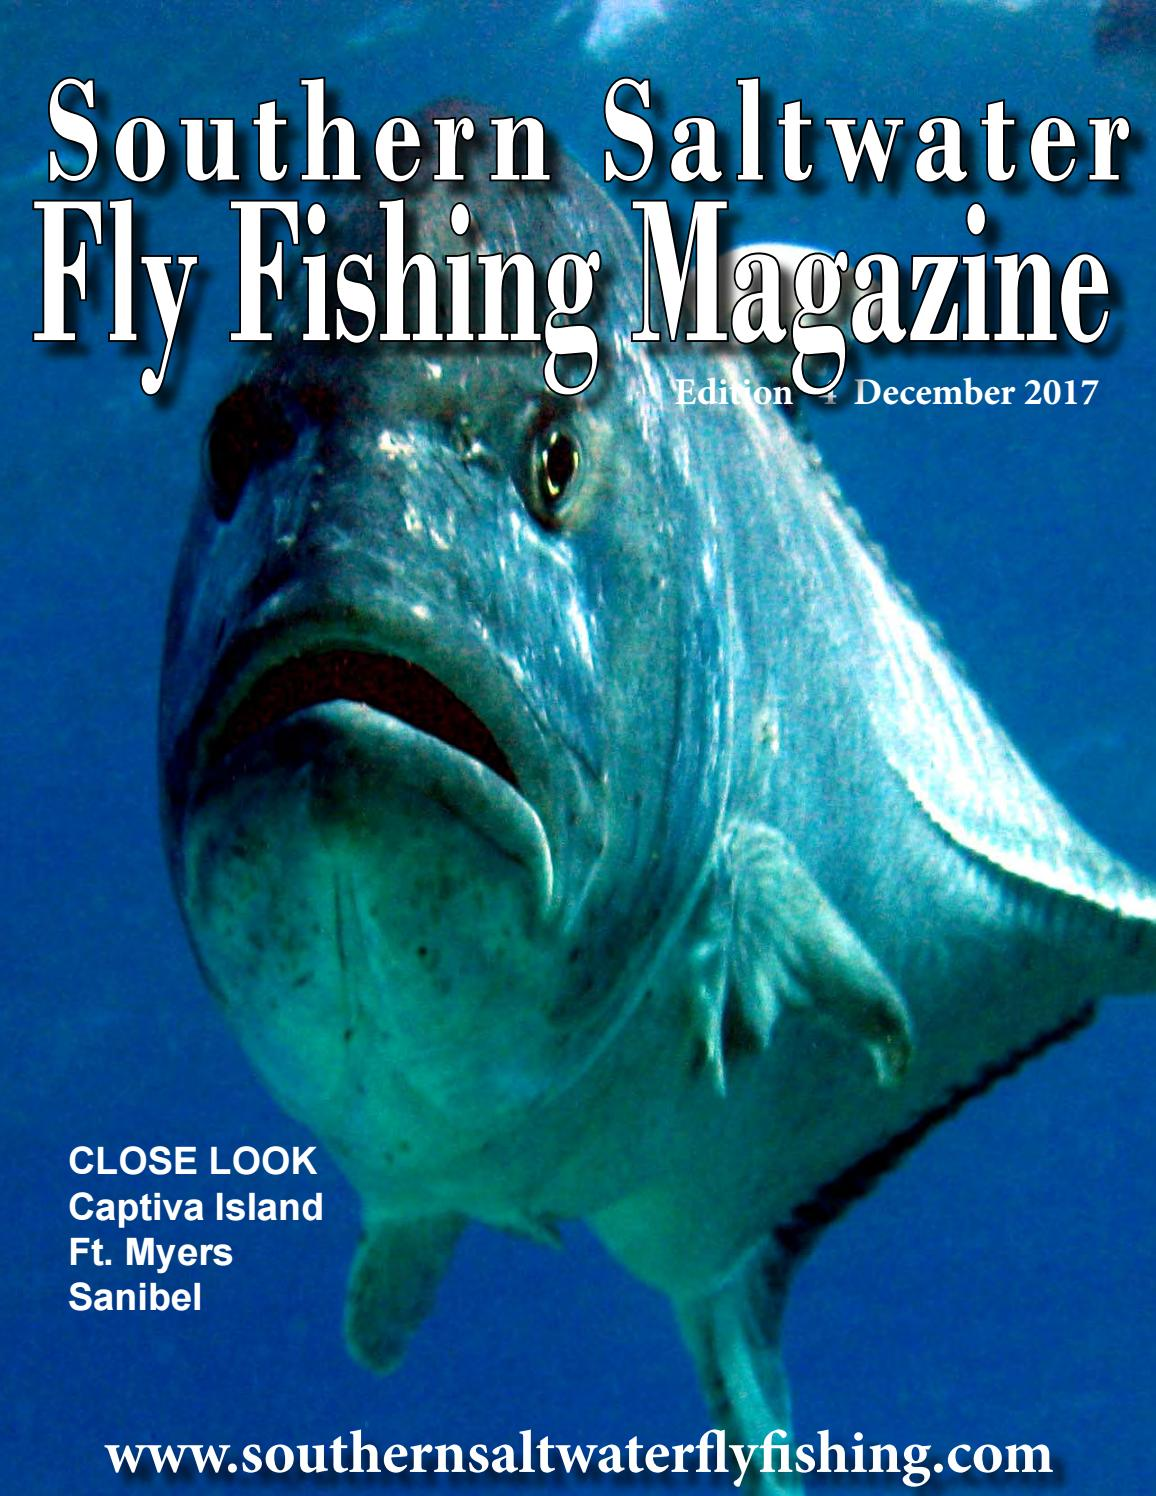 091303b0f0e Southern Saltwater Fly Fishing Issue 4 Winter 2017 by Southern ...